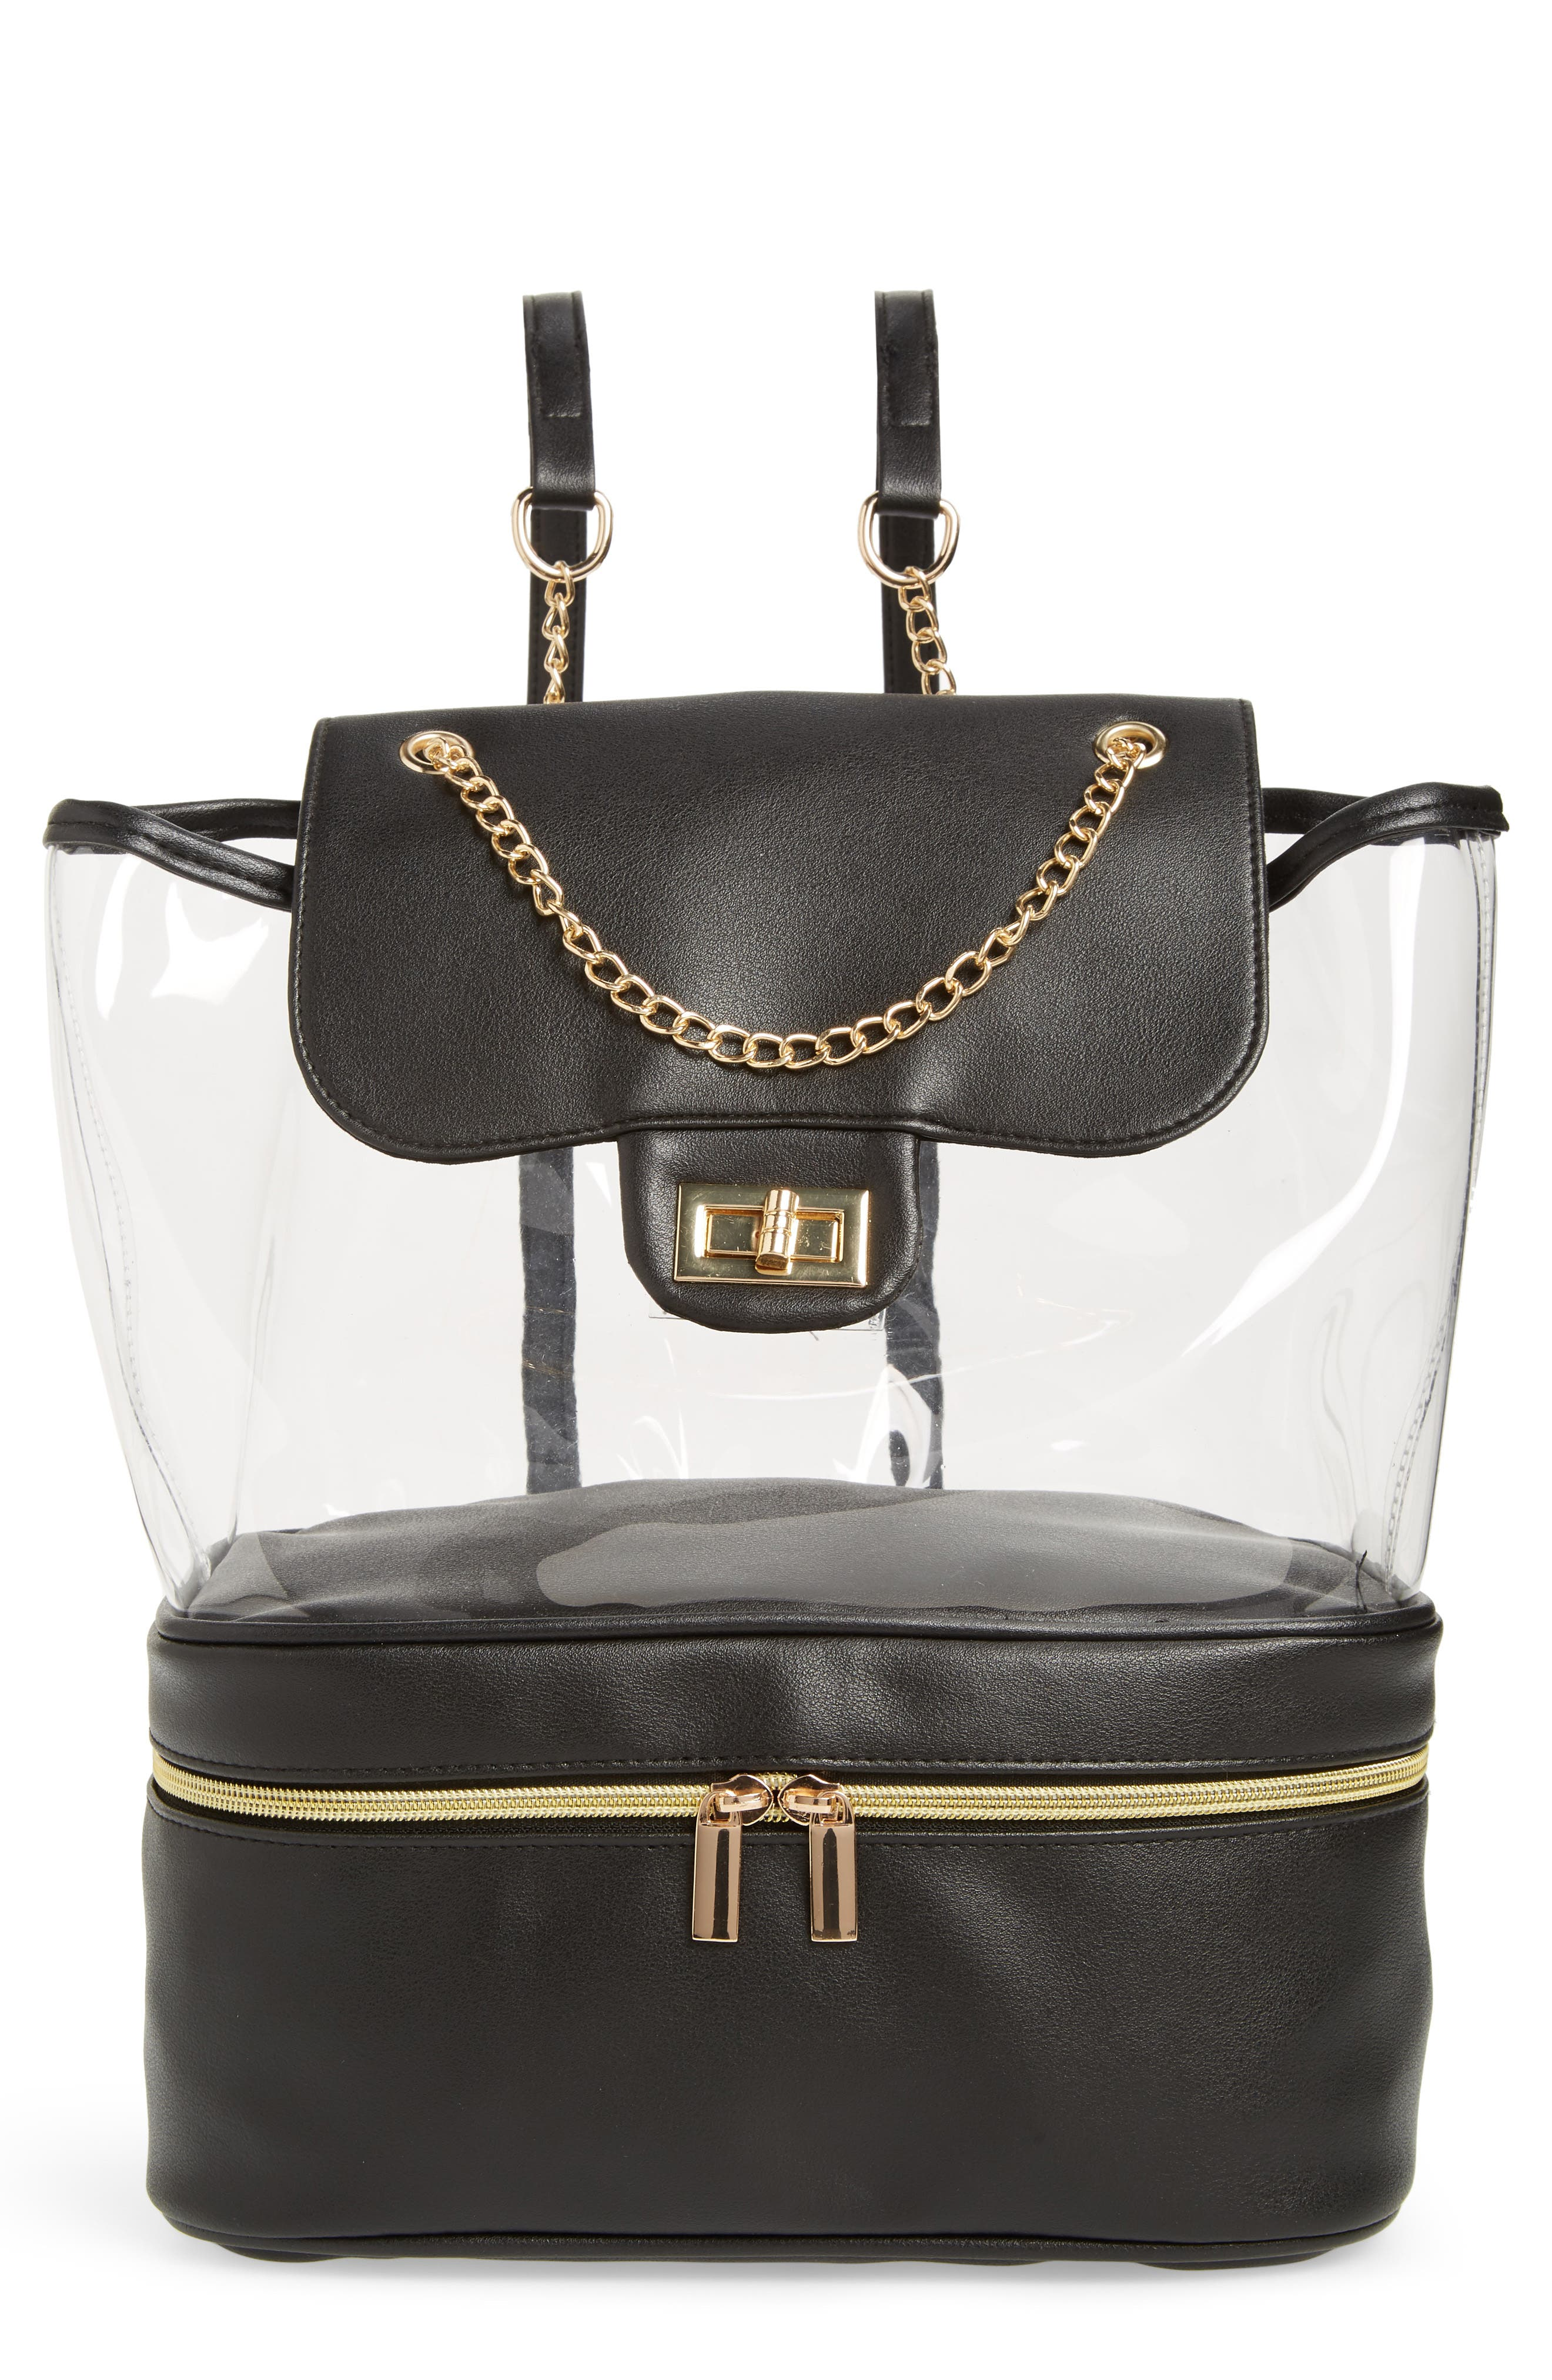 Jane & Berry Chain Strap Clear Backpack - Black